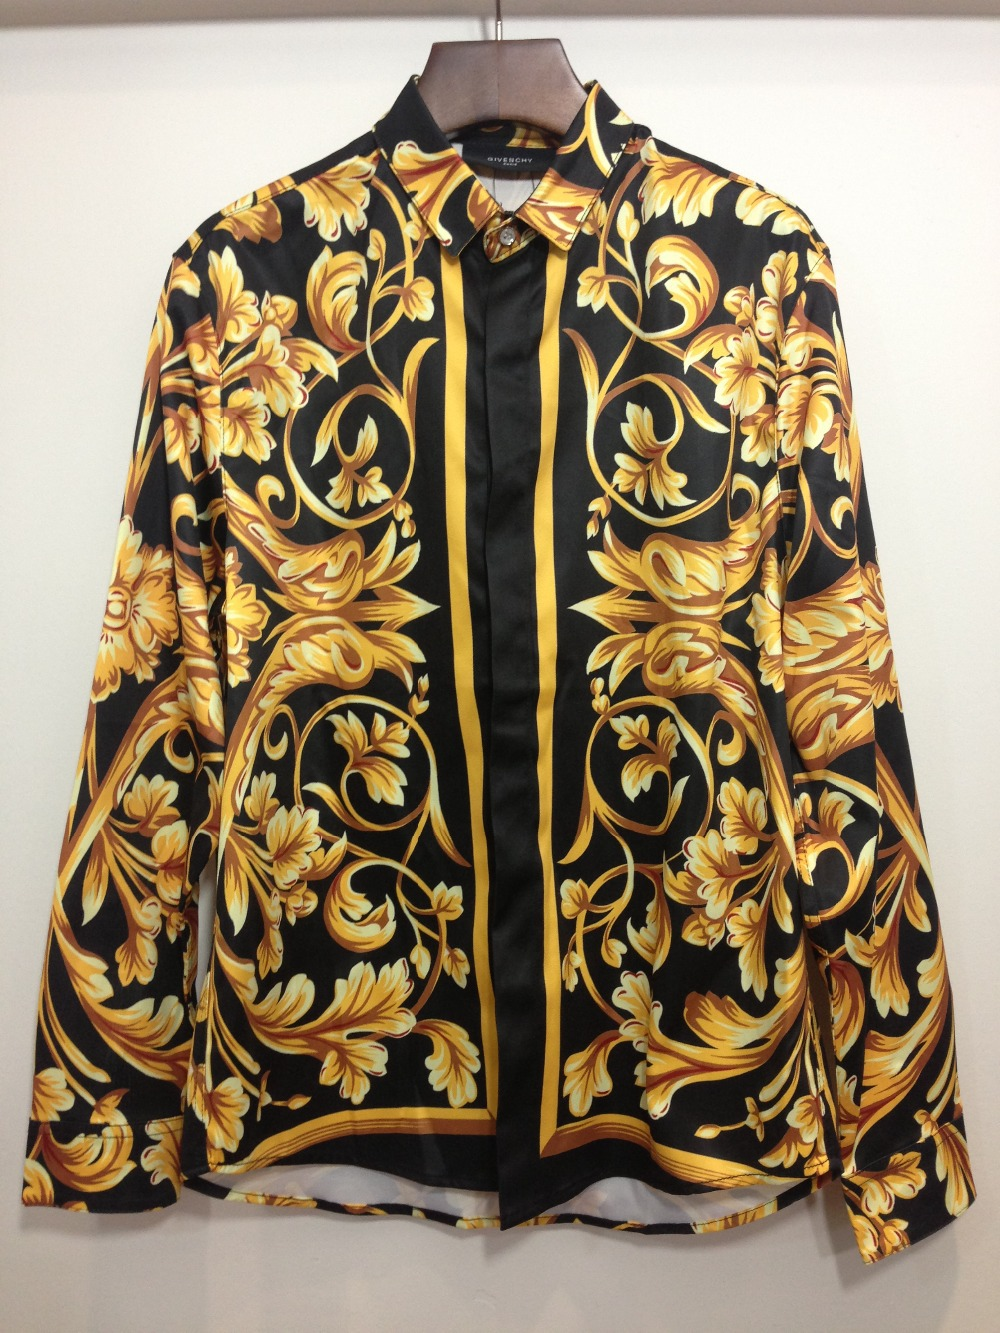 2014 new brand givenc y influx of people GIV golden flower print shirt fashion casual long sleeved shirt-in Casual Shirts from Apparel & Accessories on Aliexpress.com